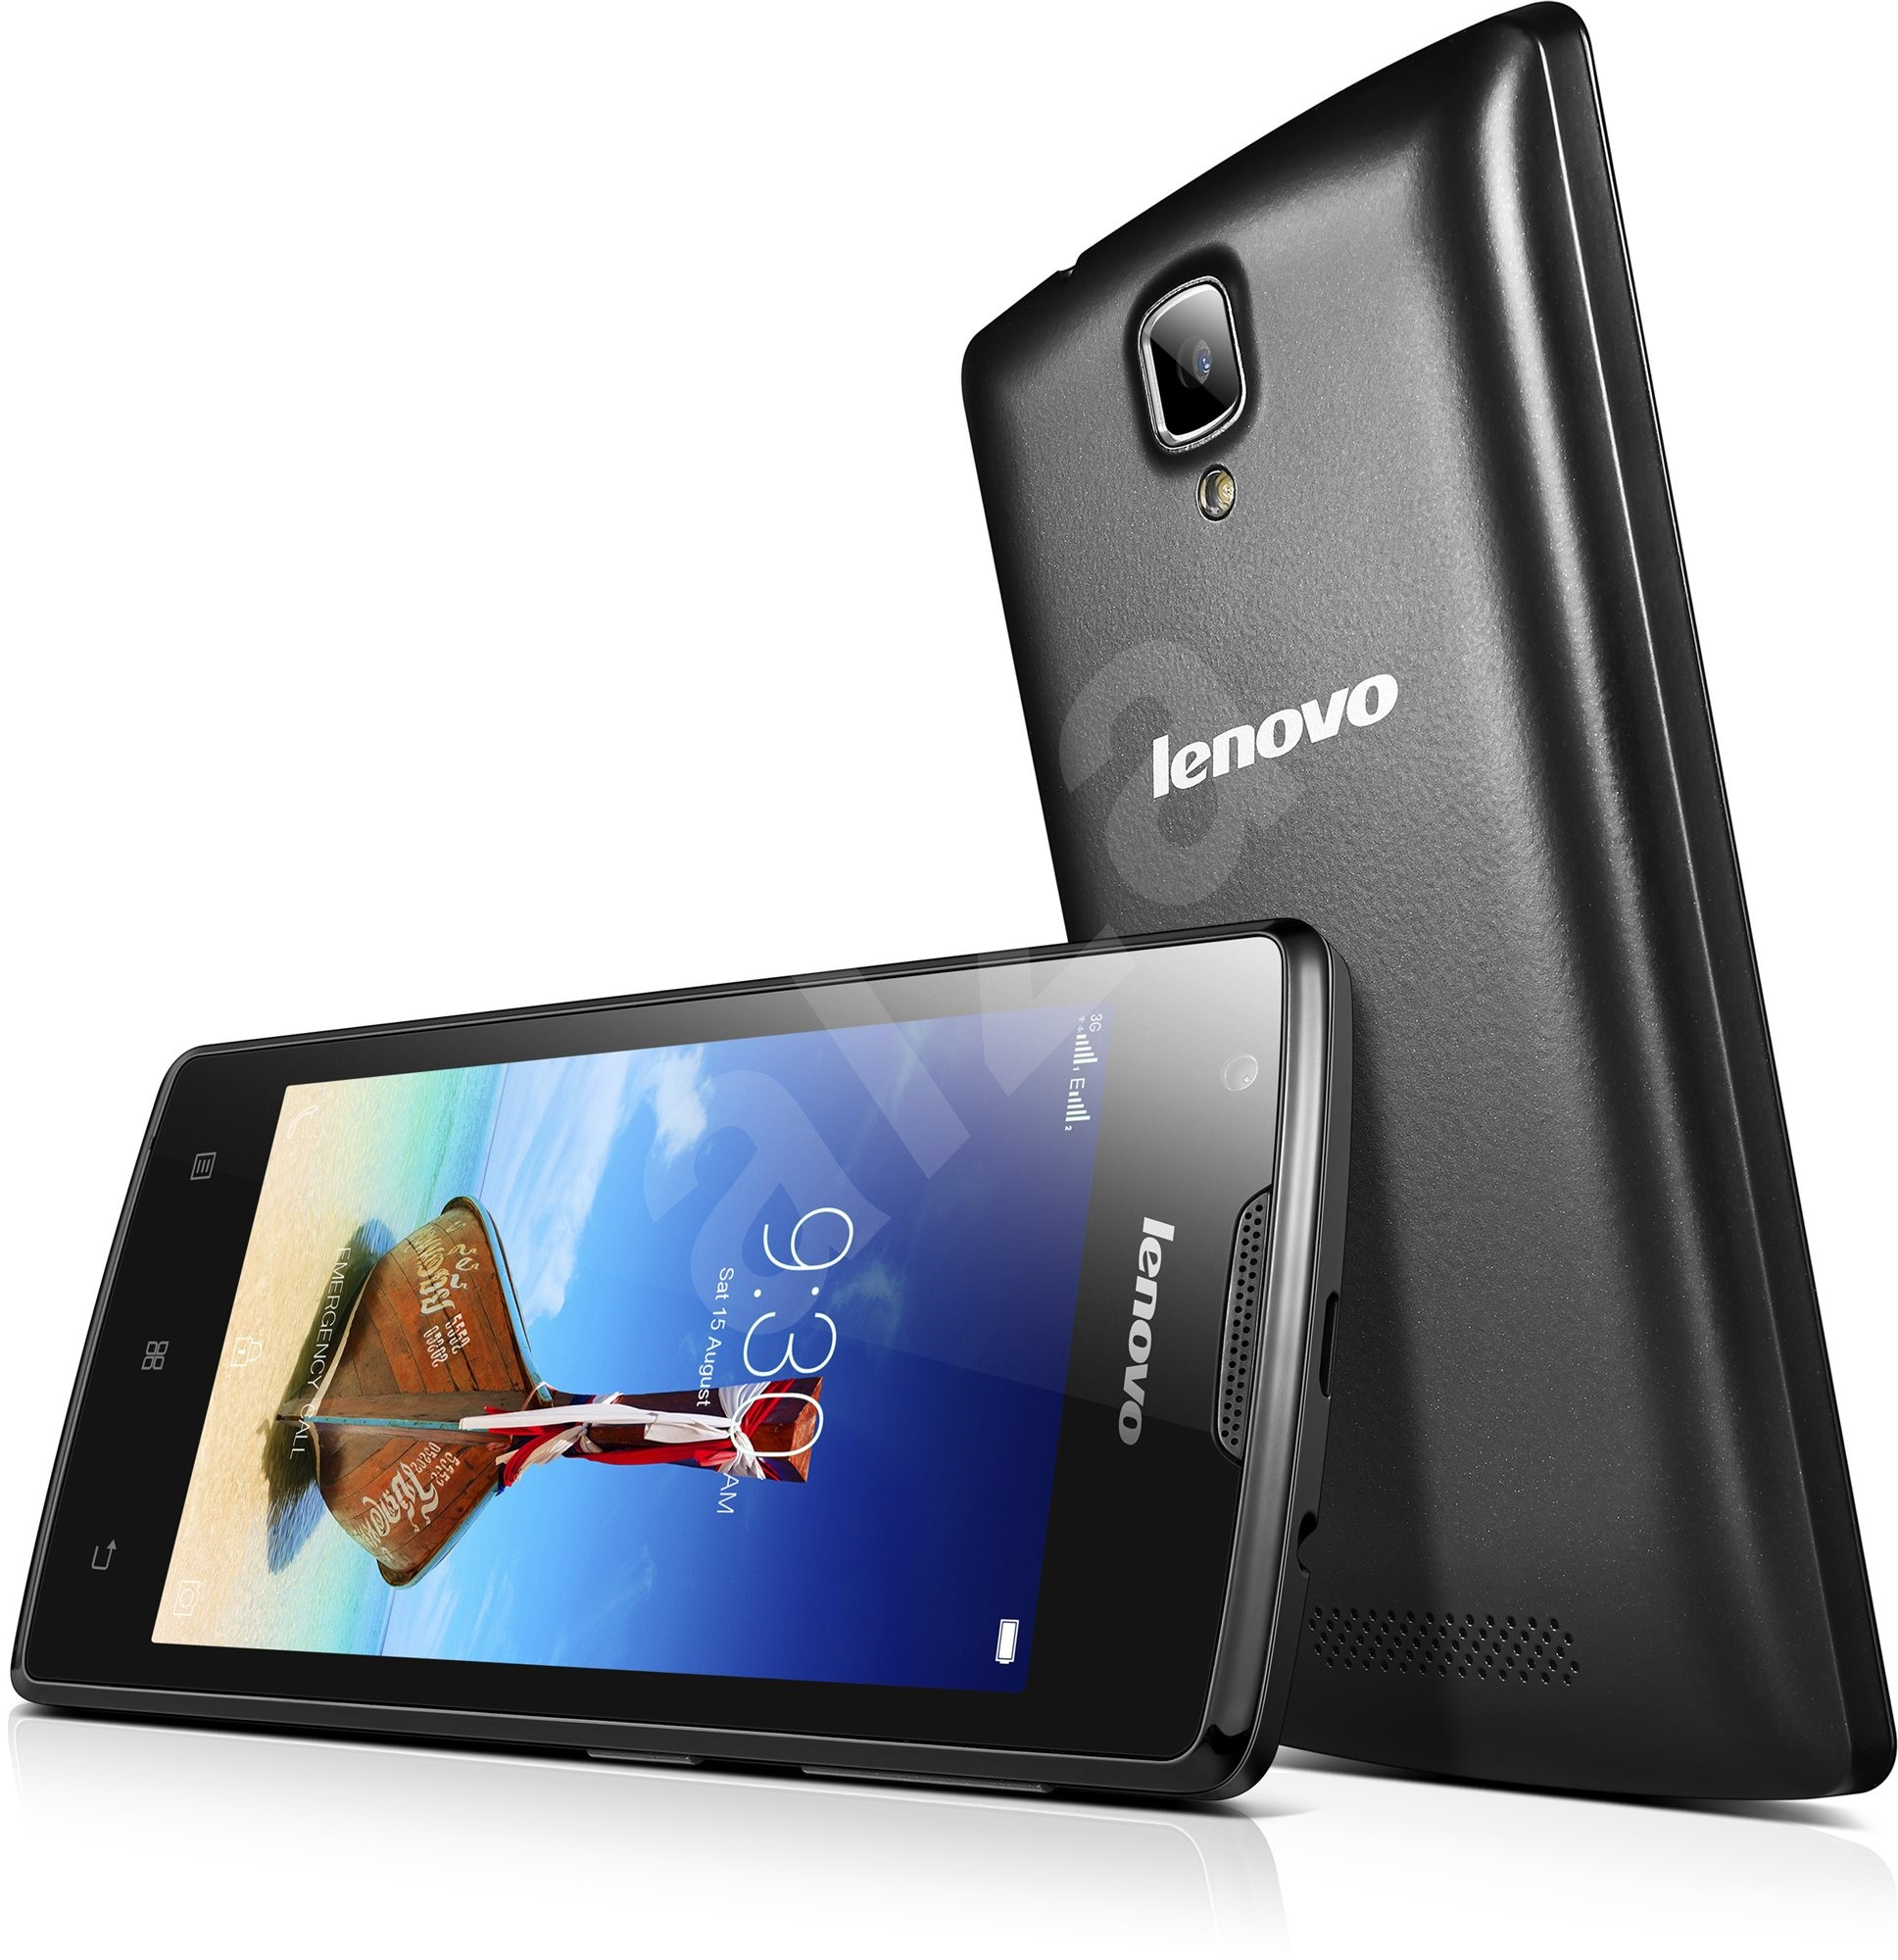 lenovo a1000 dual sim mobile phone. Black Bedroom Furniture Sets. Home Design Ideas